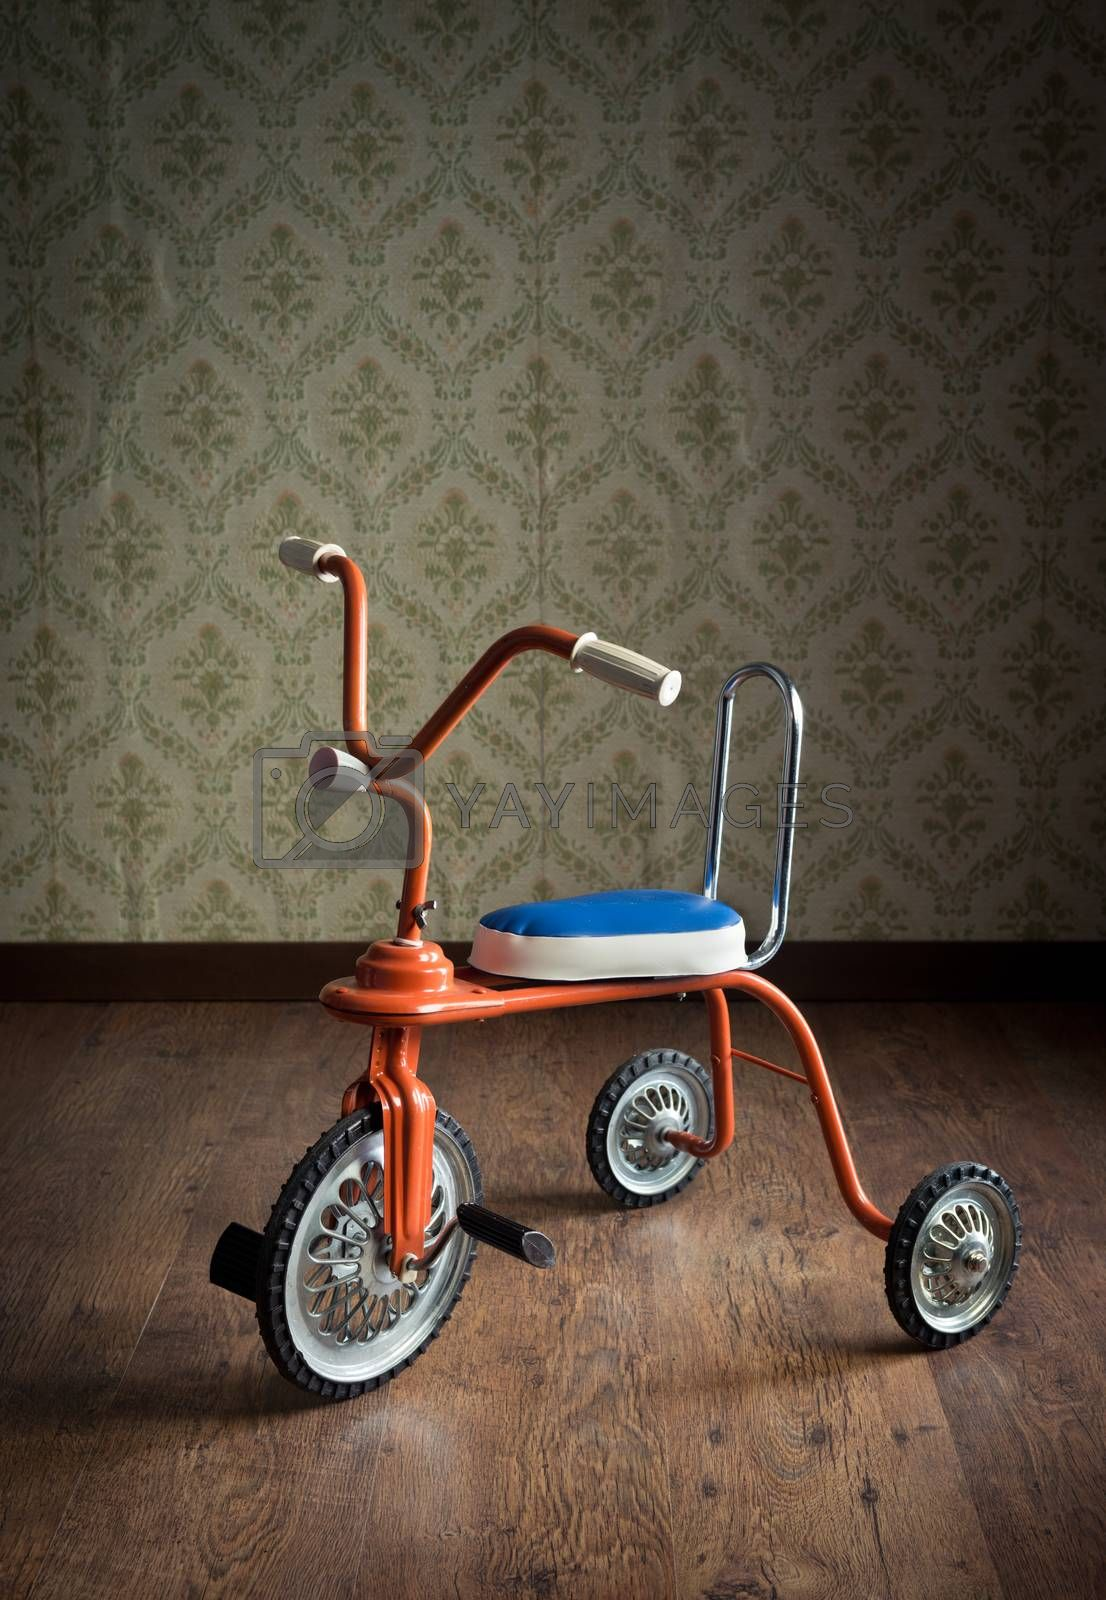 Vintage orange tricycle on hardwood floor and vintage wallpaper on background.